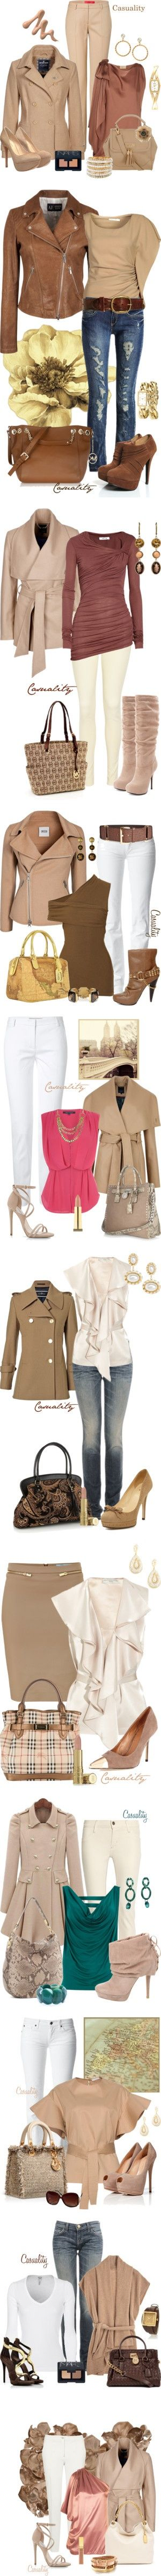 """Creme/Neutrals"" by casuality on Polyvore Wow these are so beautiful!!!!"